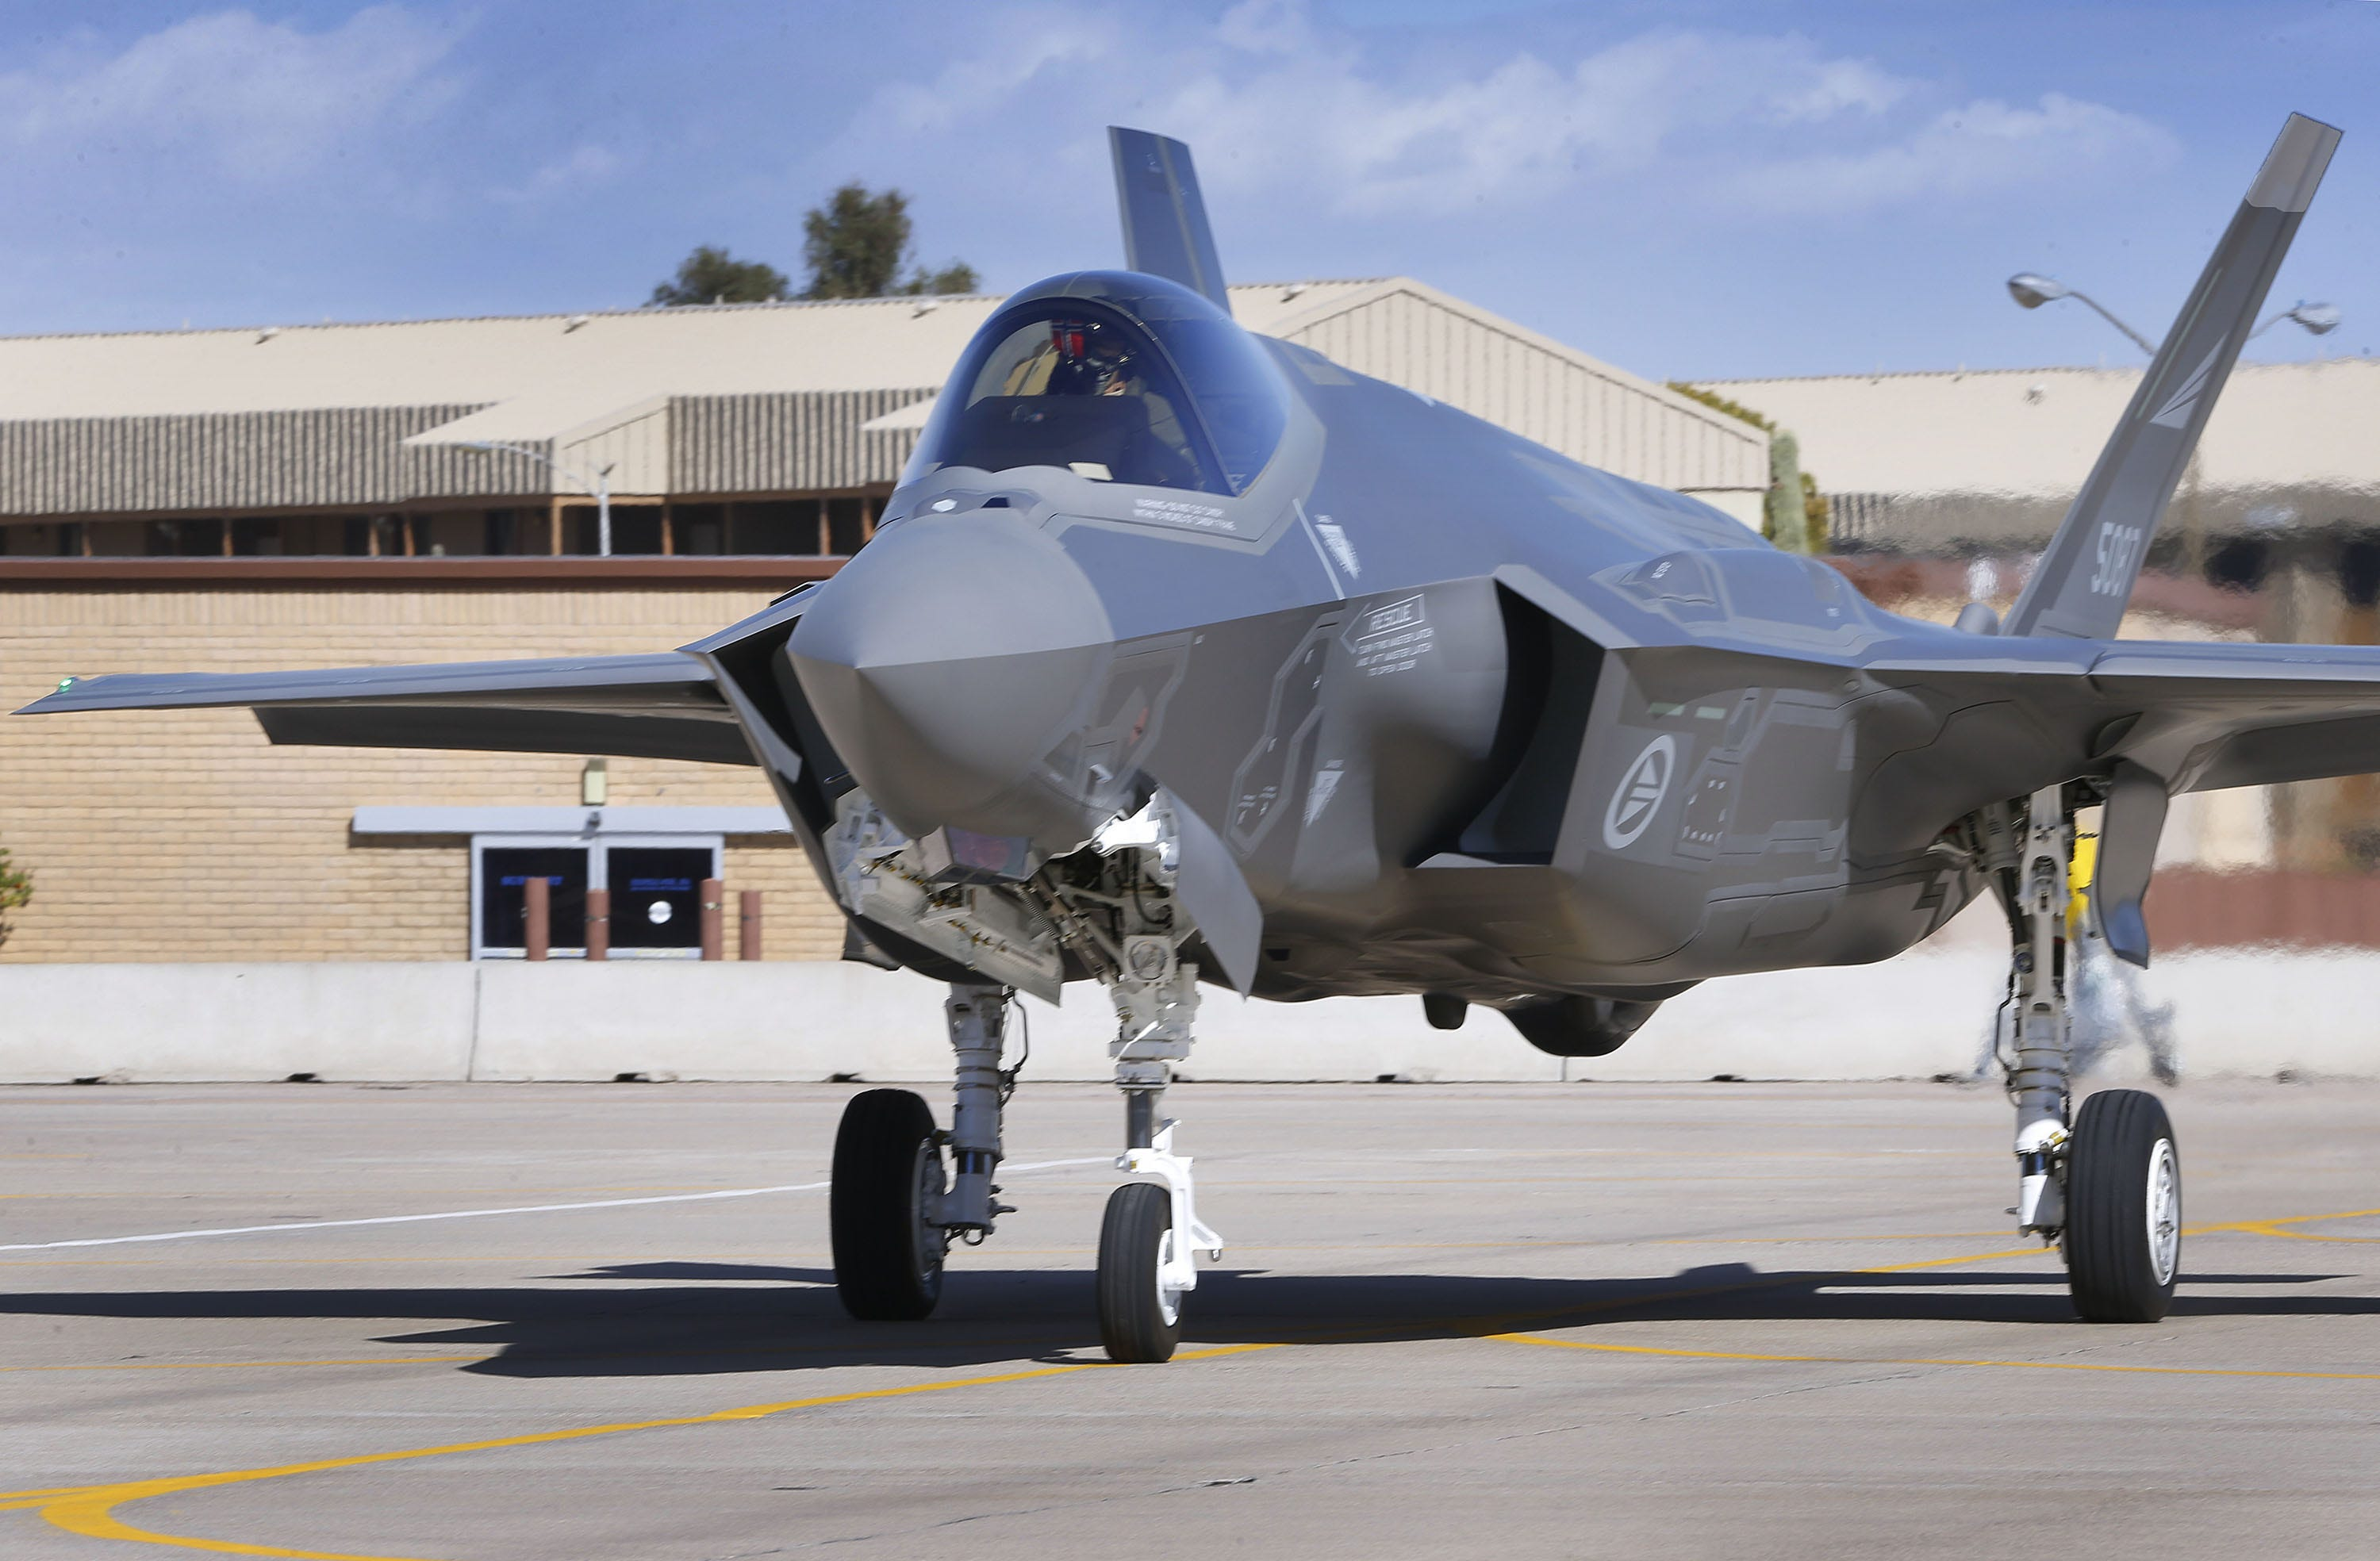 F-35 grounded indefinitely at Luke Air Force Base over hypoxia reports